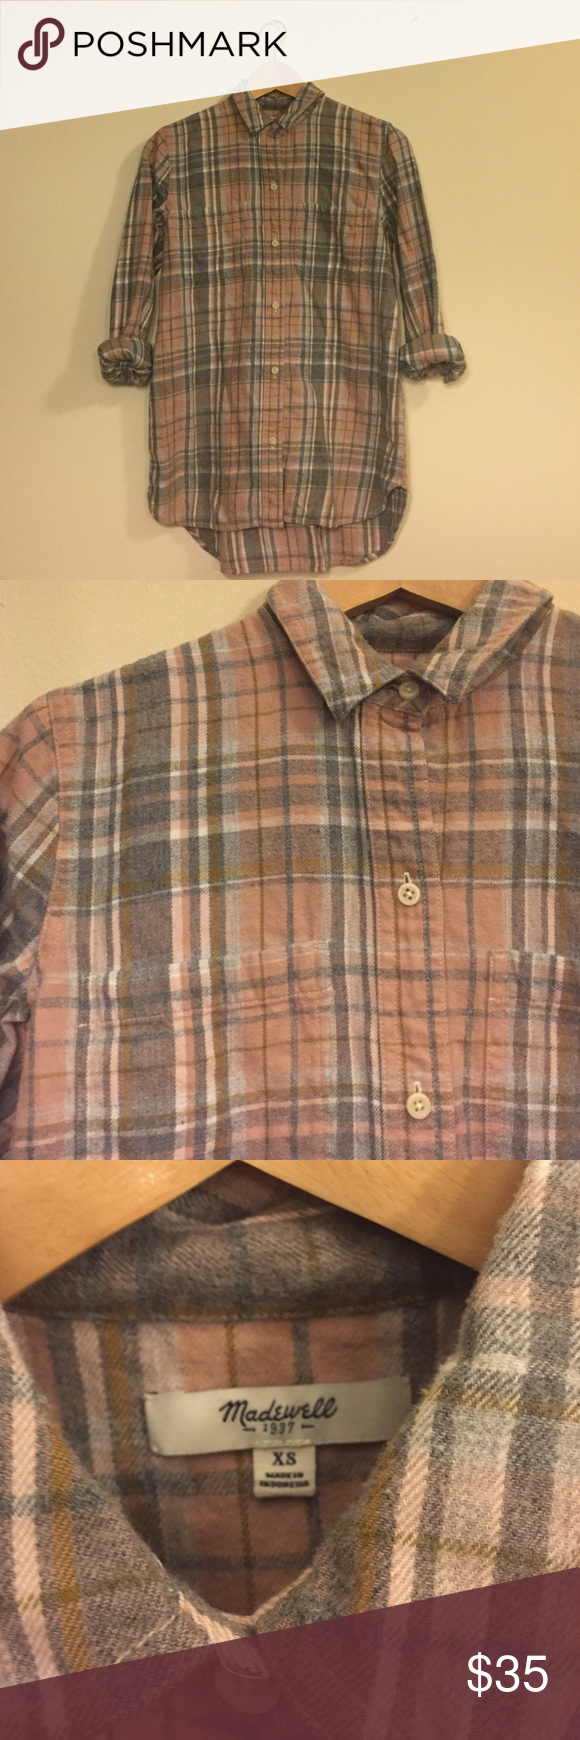 Madewell Ex-Boyfriend Shirt in Camden Plaid Worn a few times, in great condition. Mild pilling, as is common with a cozy flannel! Great blush and grey tones make the perfect understated neutral plaid! Madewell Tops Button Down Shirts